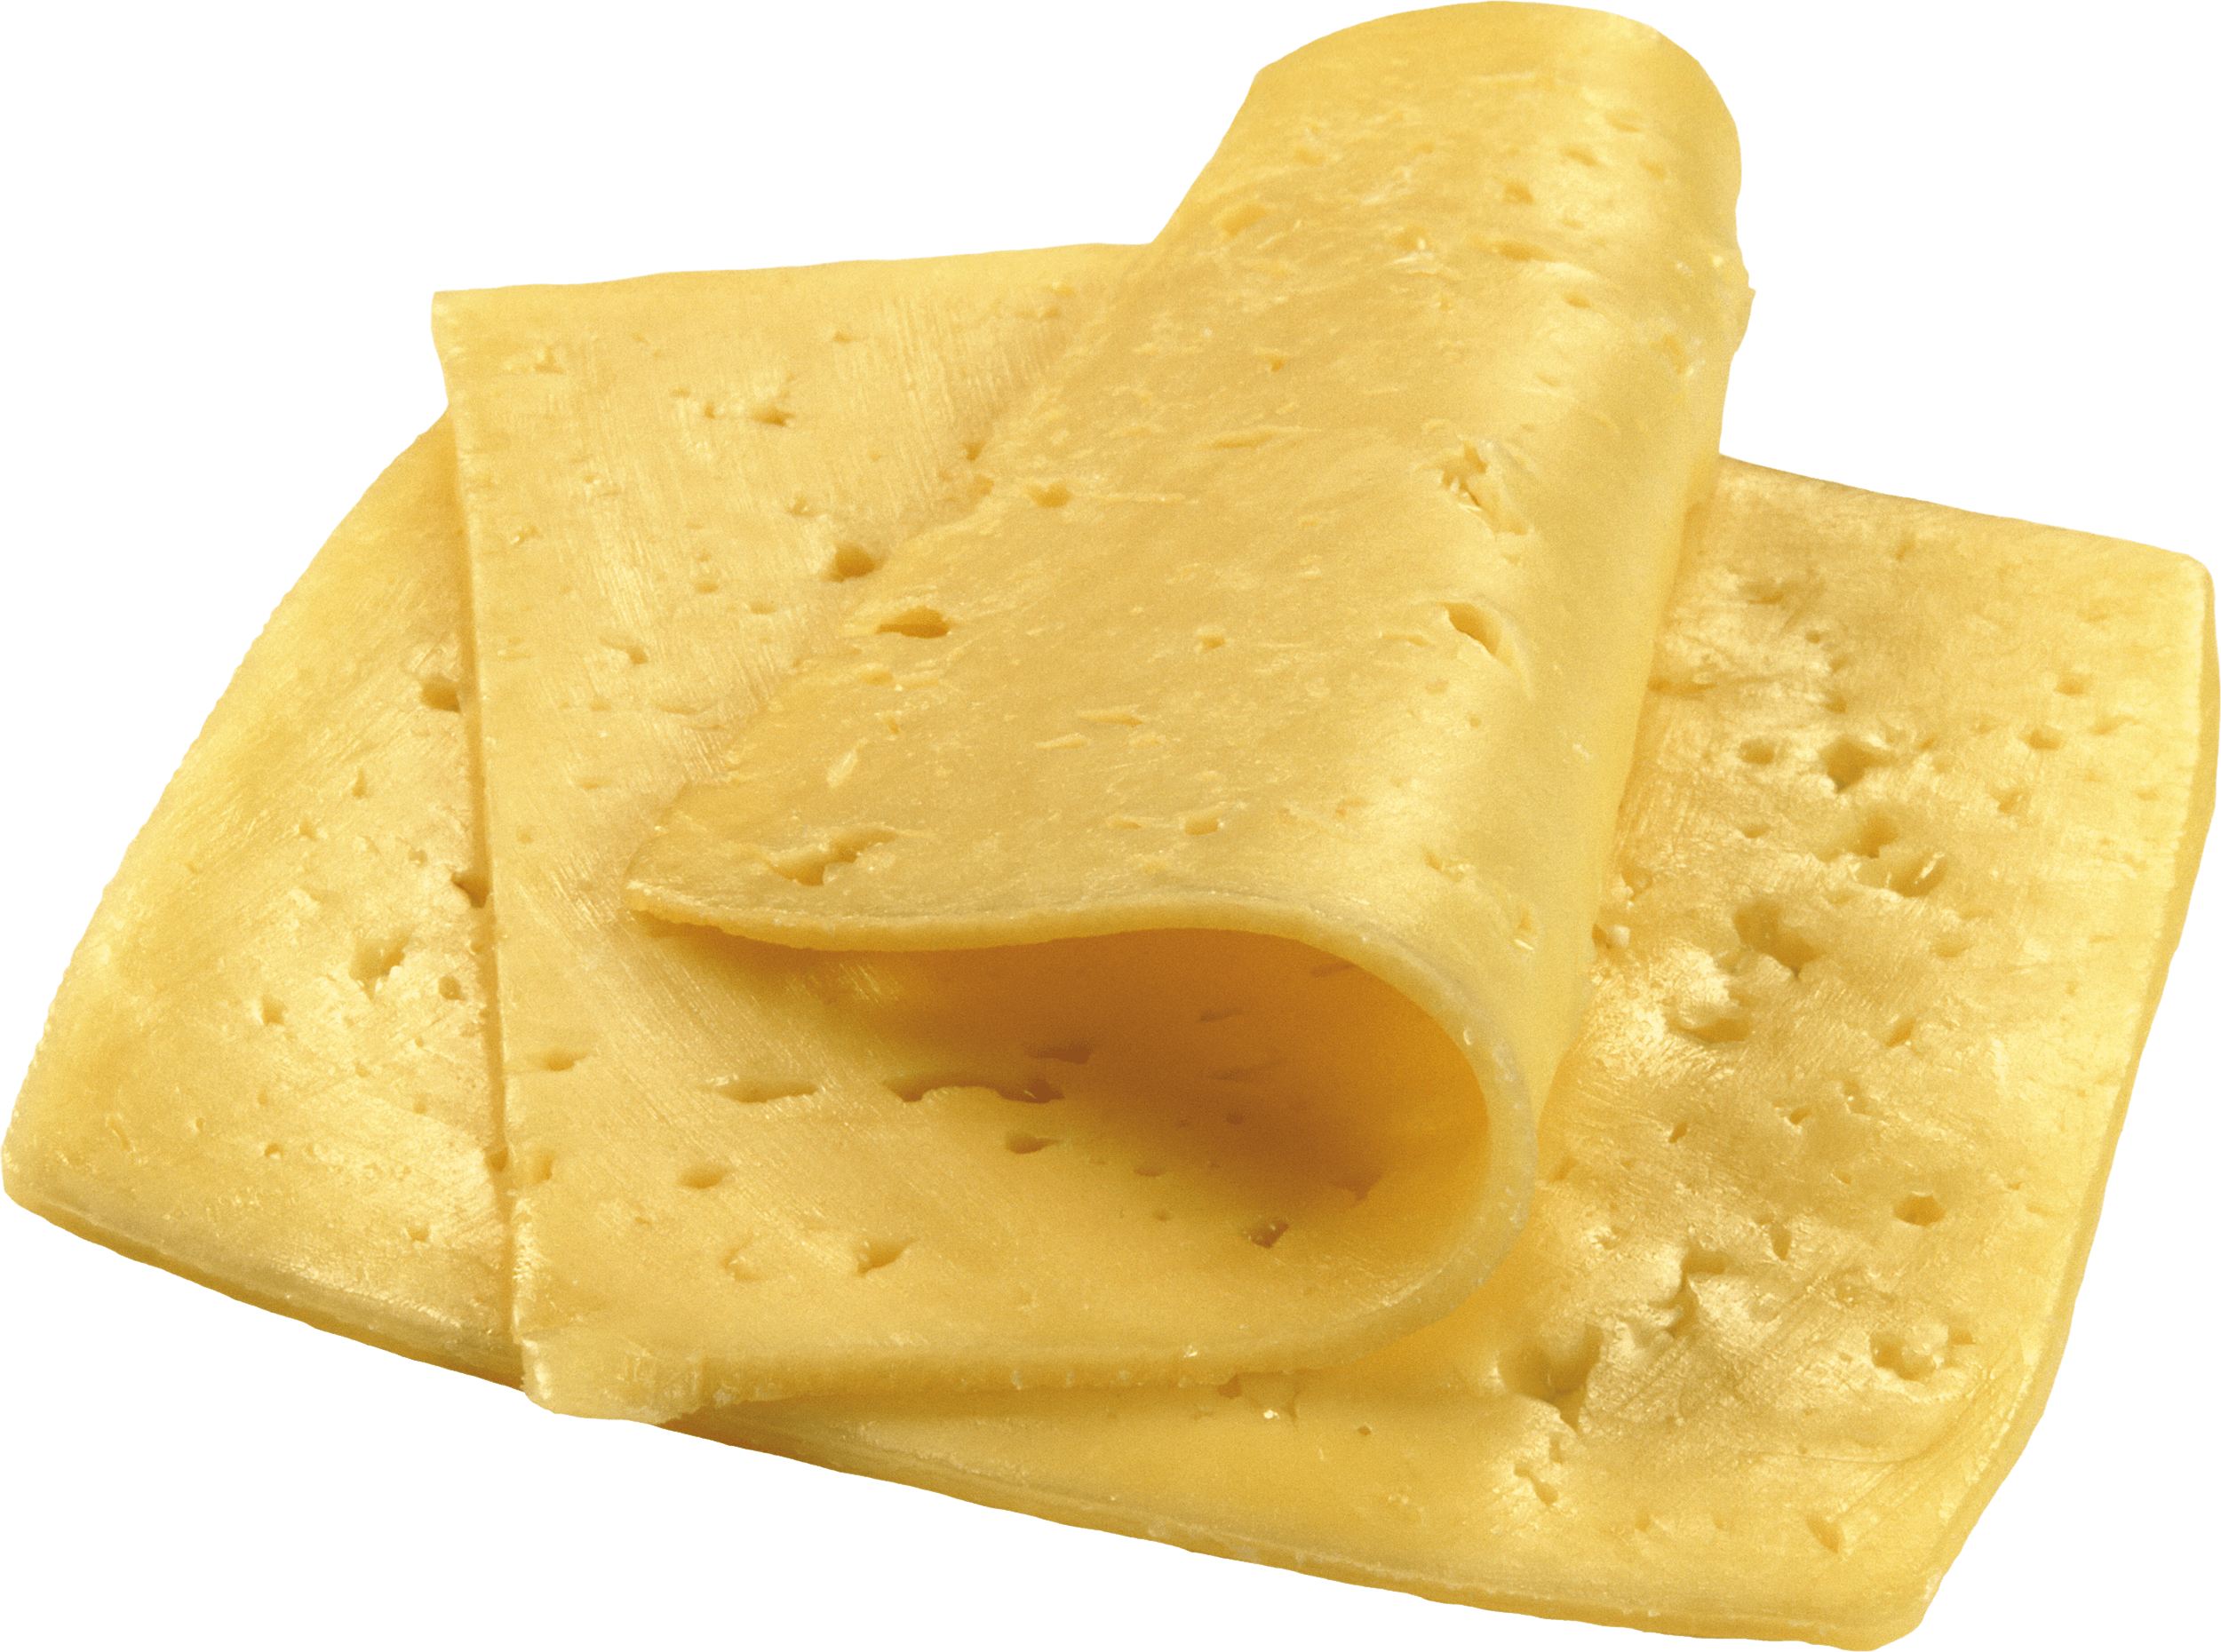 Cheese Sliced Png Image PNG Image